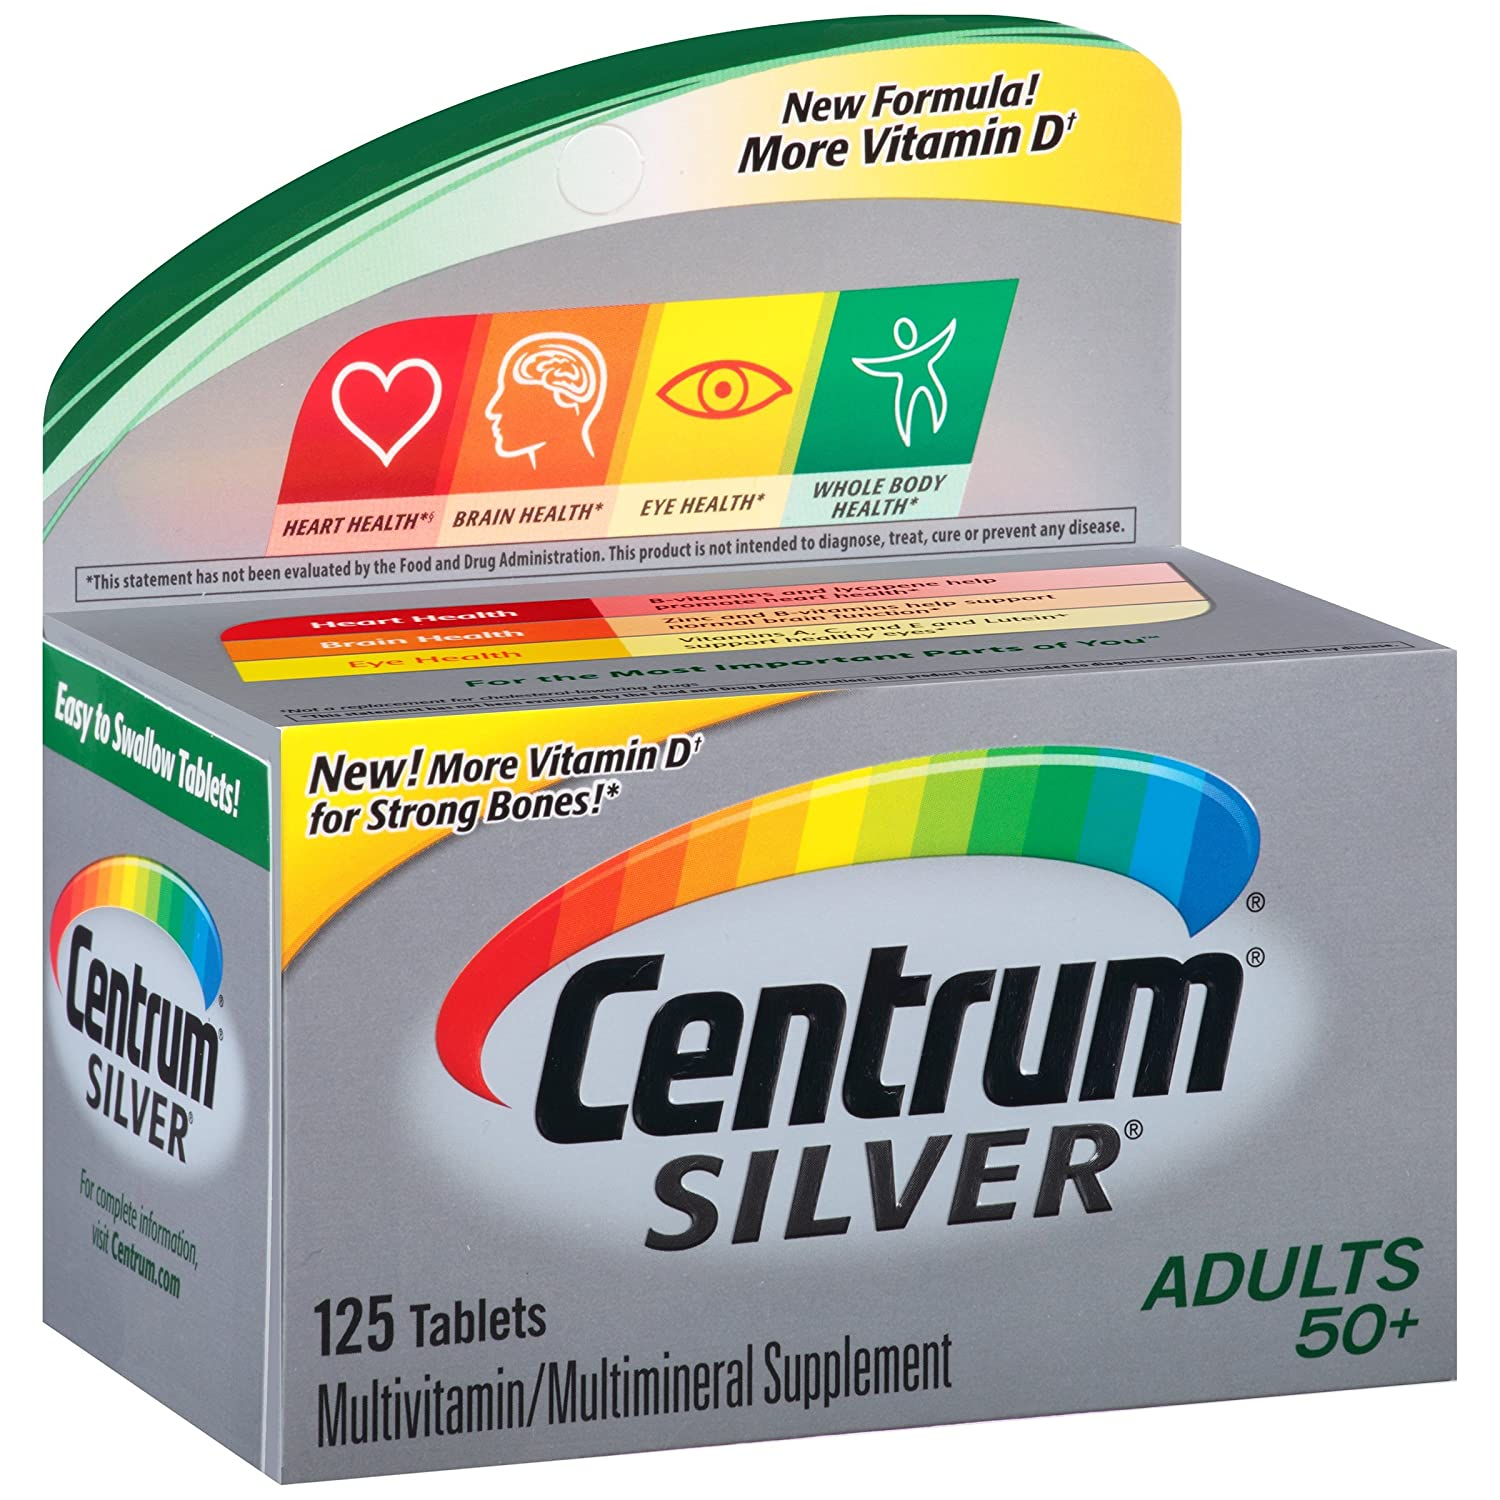 Centrum Silver Adult (125 Count) Multivitamin/Multimineral Supplement Tablet, Vitamin D3, Age 50+ by Centrum